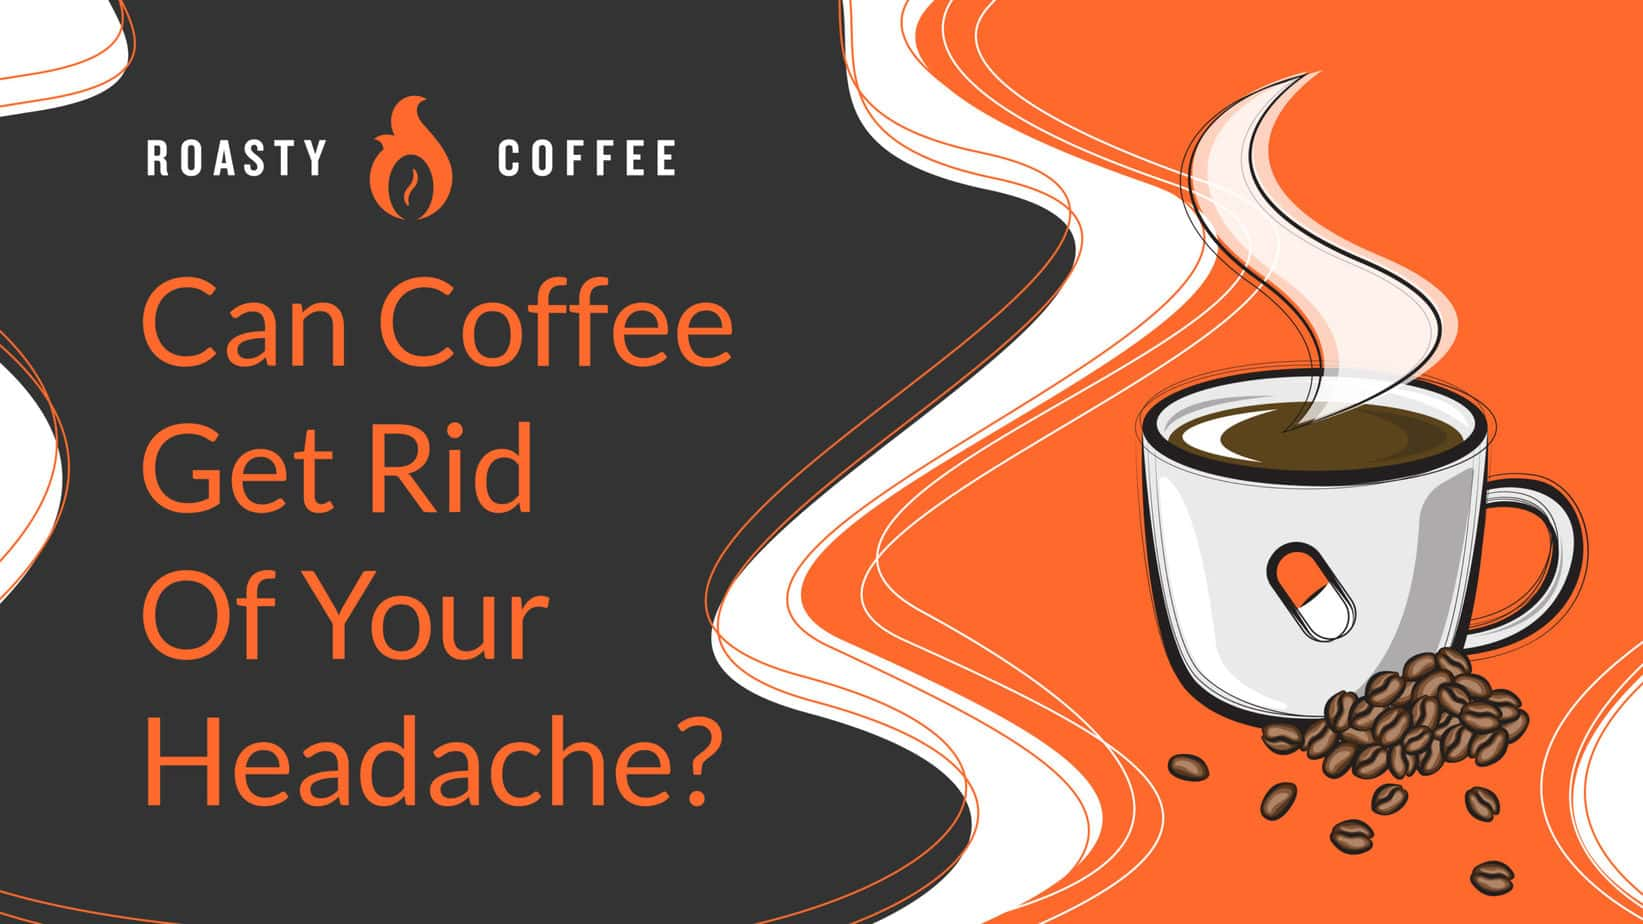 Can Coffee Get Rid Of Your Headache